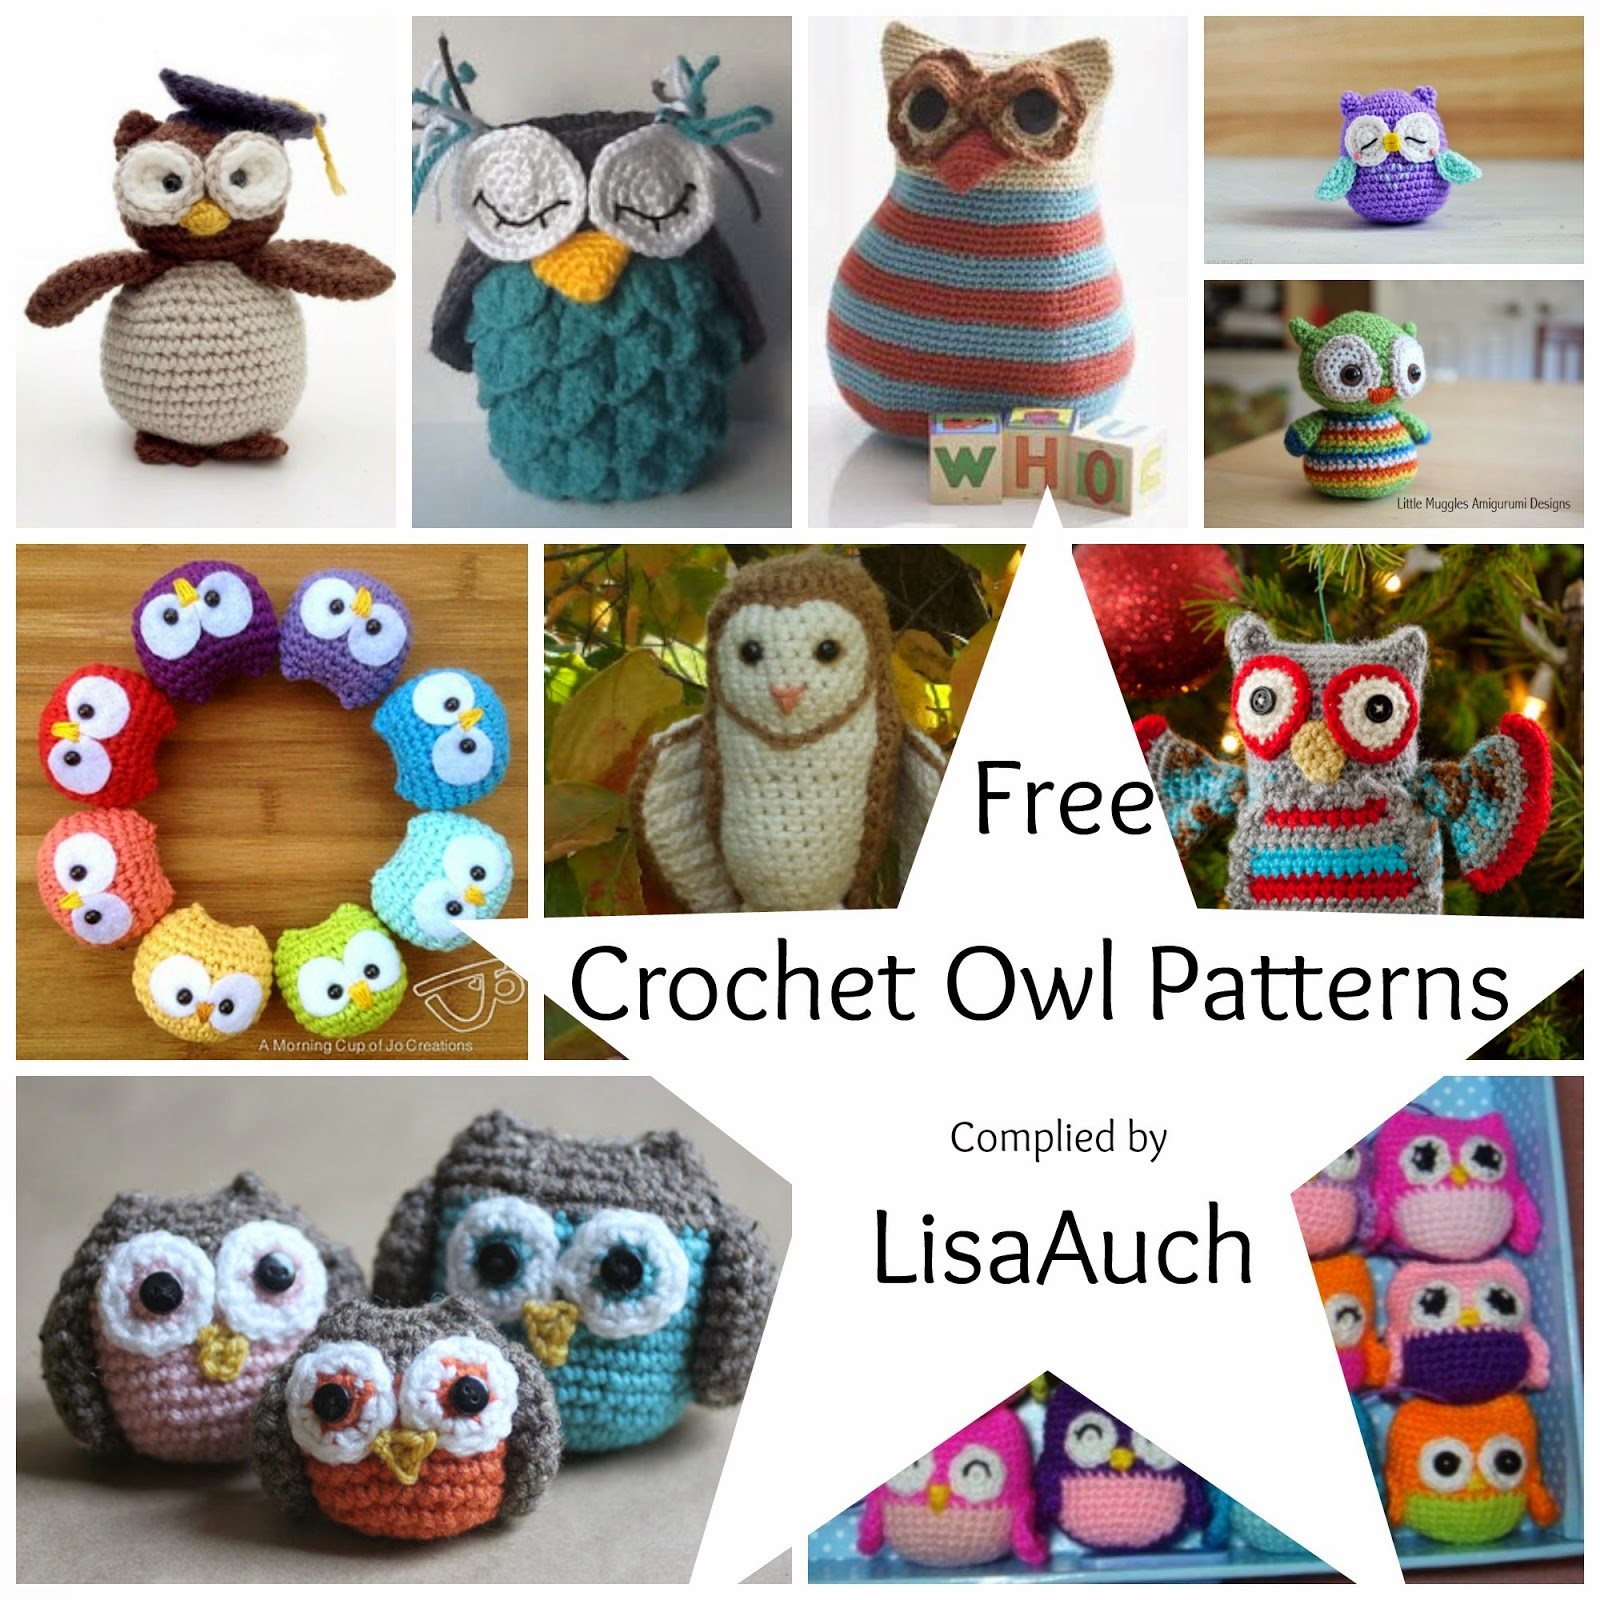 Amigurumi Owl. | Owl crochet patterns, Crochet projects, Crochet ... | 1600x1600